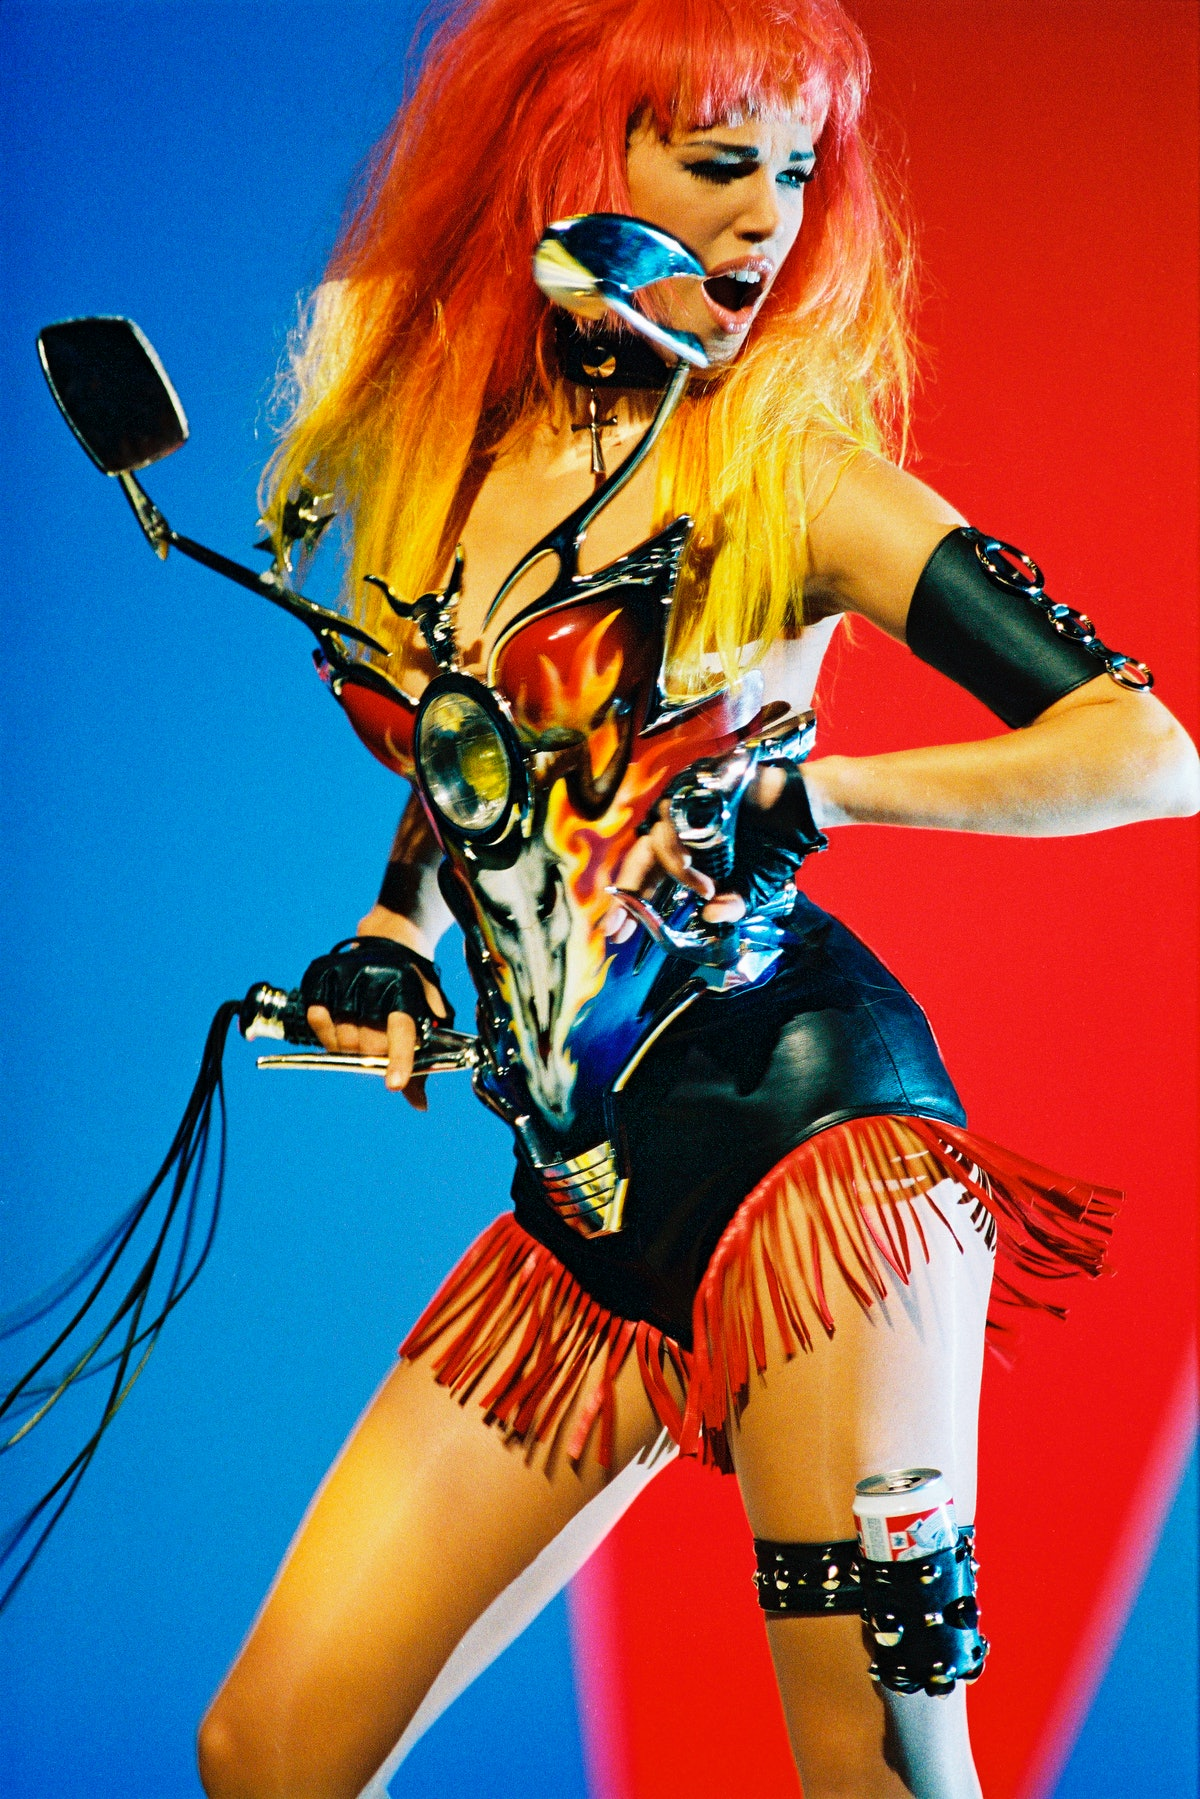 Emma Sjöberg wearing an iconic look by Thierry Mugler